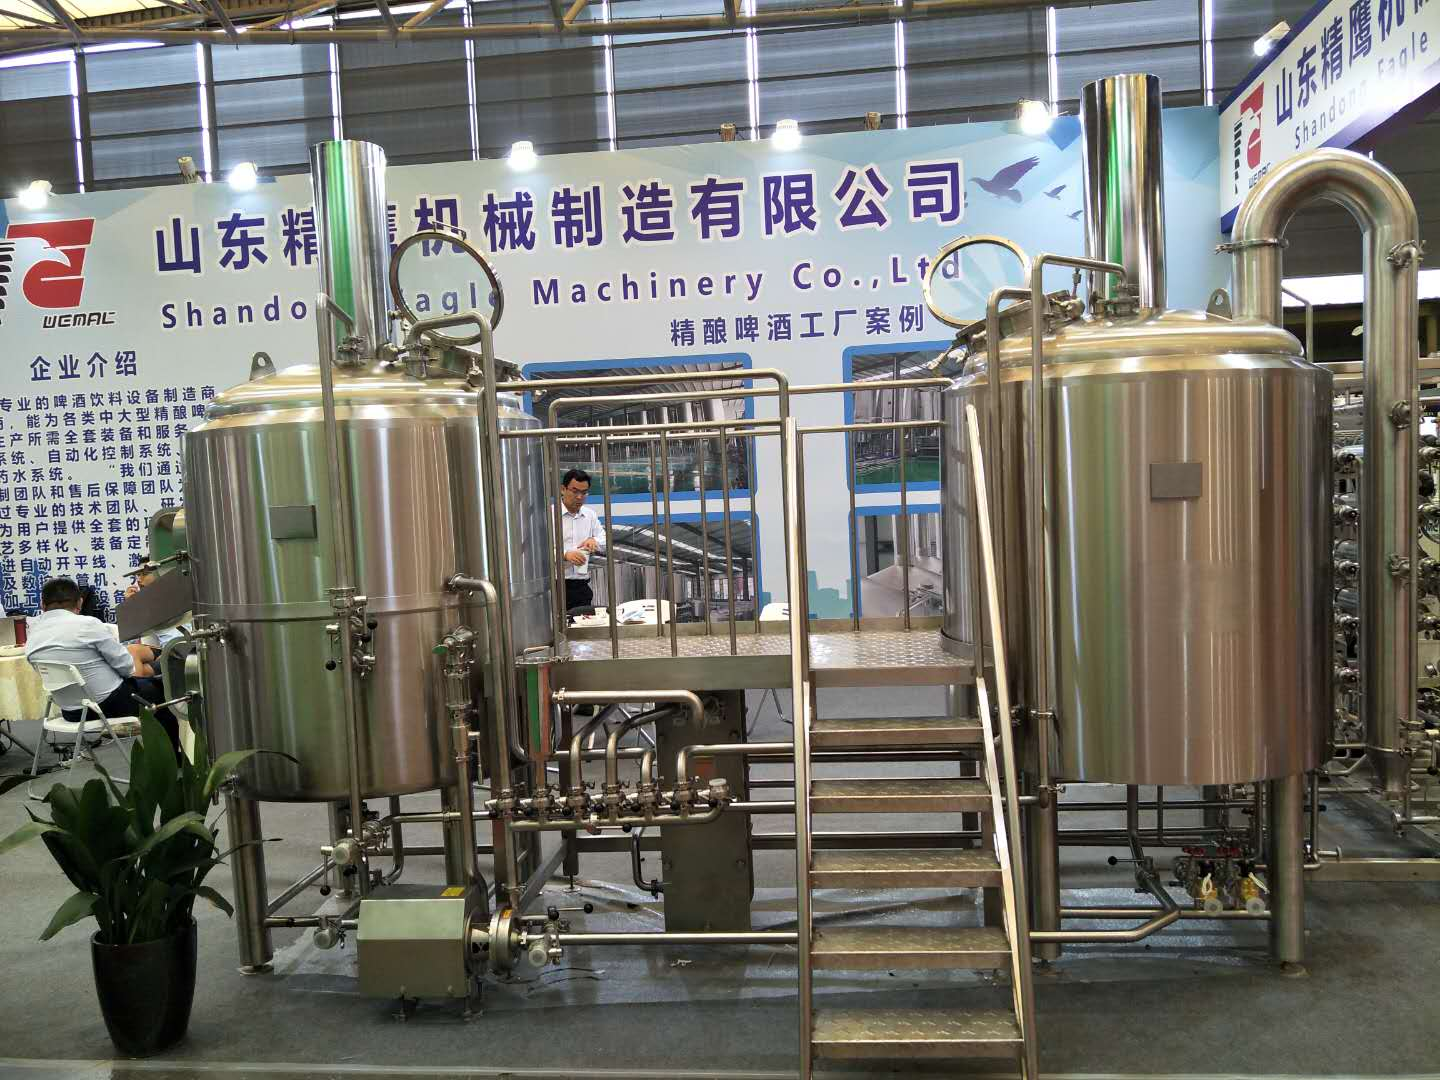 500L Turnkey beer brewing system mash fermentation tank from WEMAC